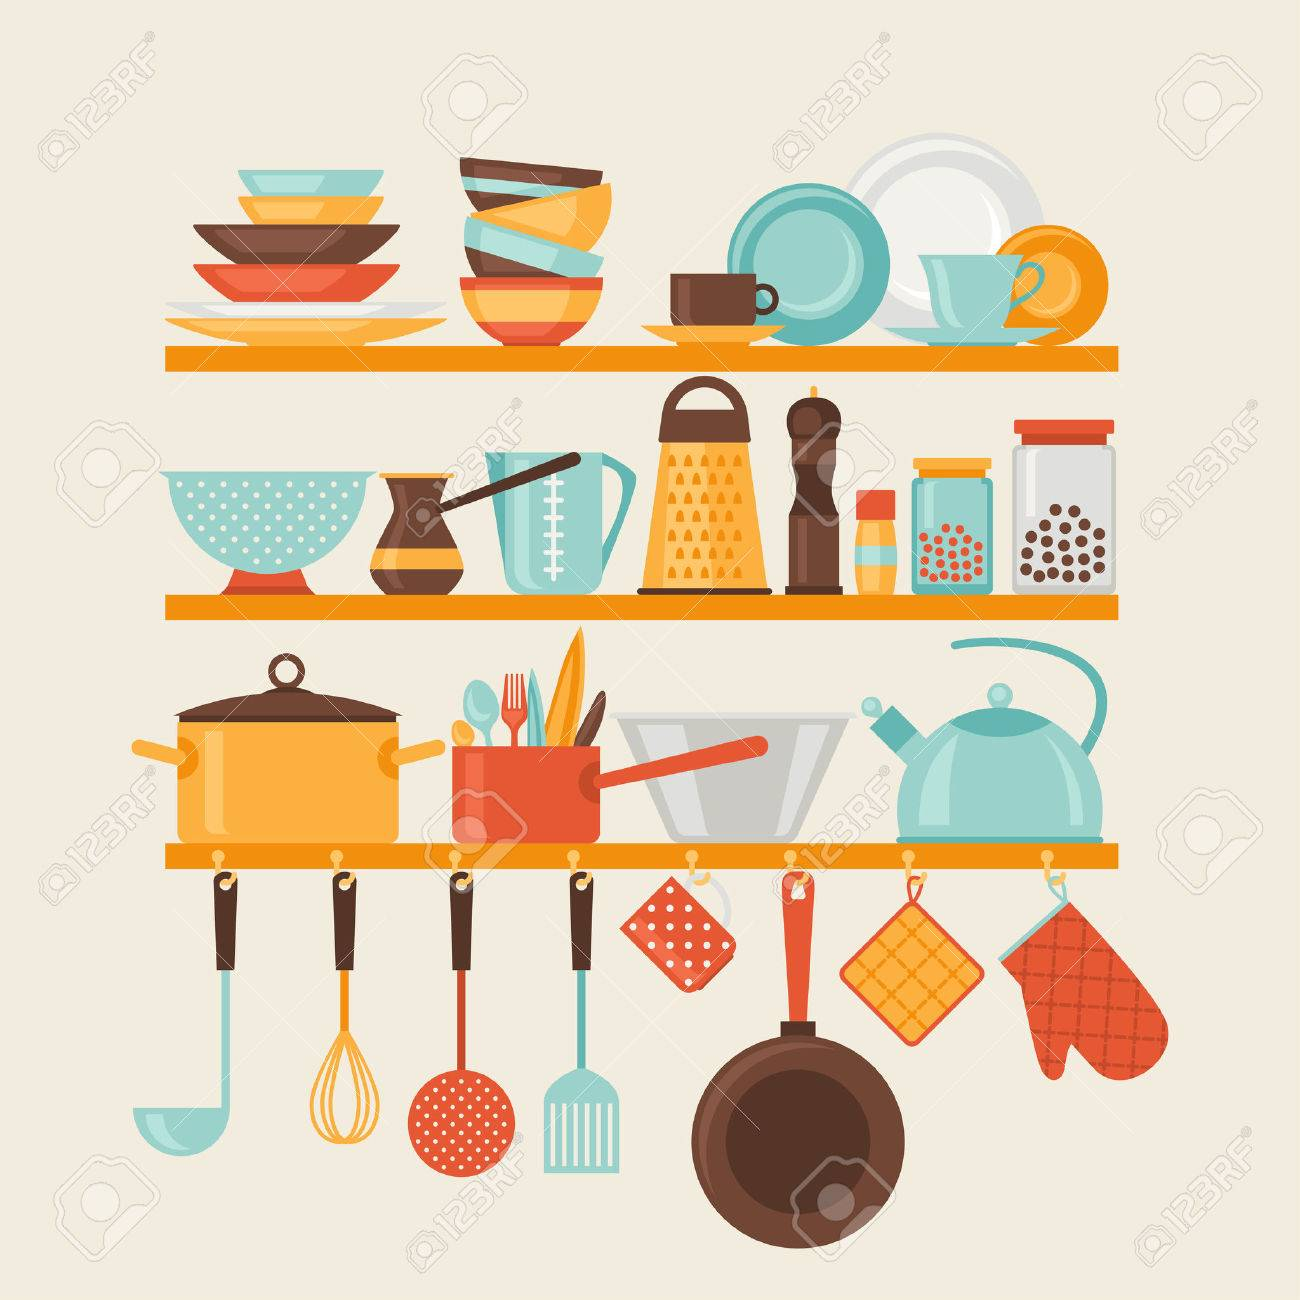 Card with kitchen shelves and cooking utensils in retro style - 30170843